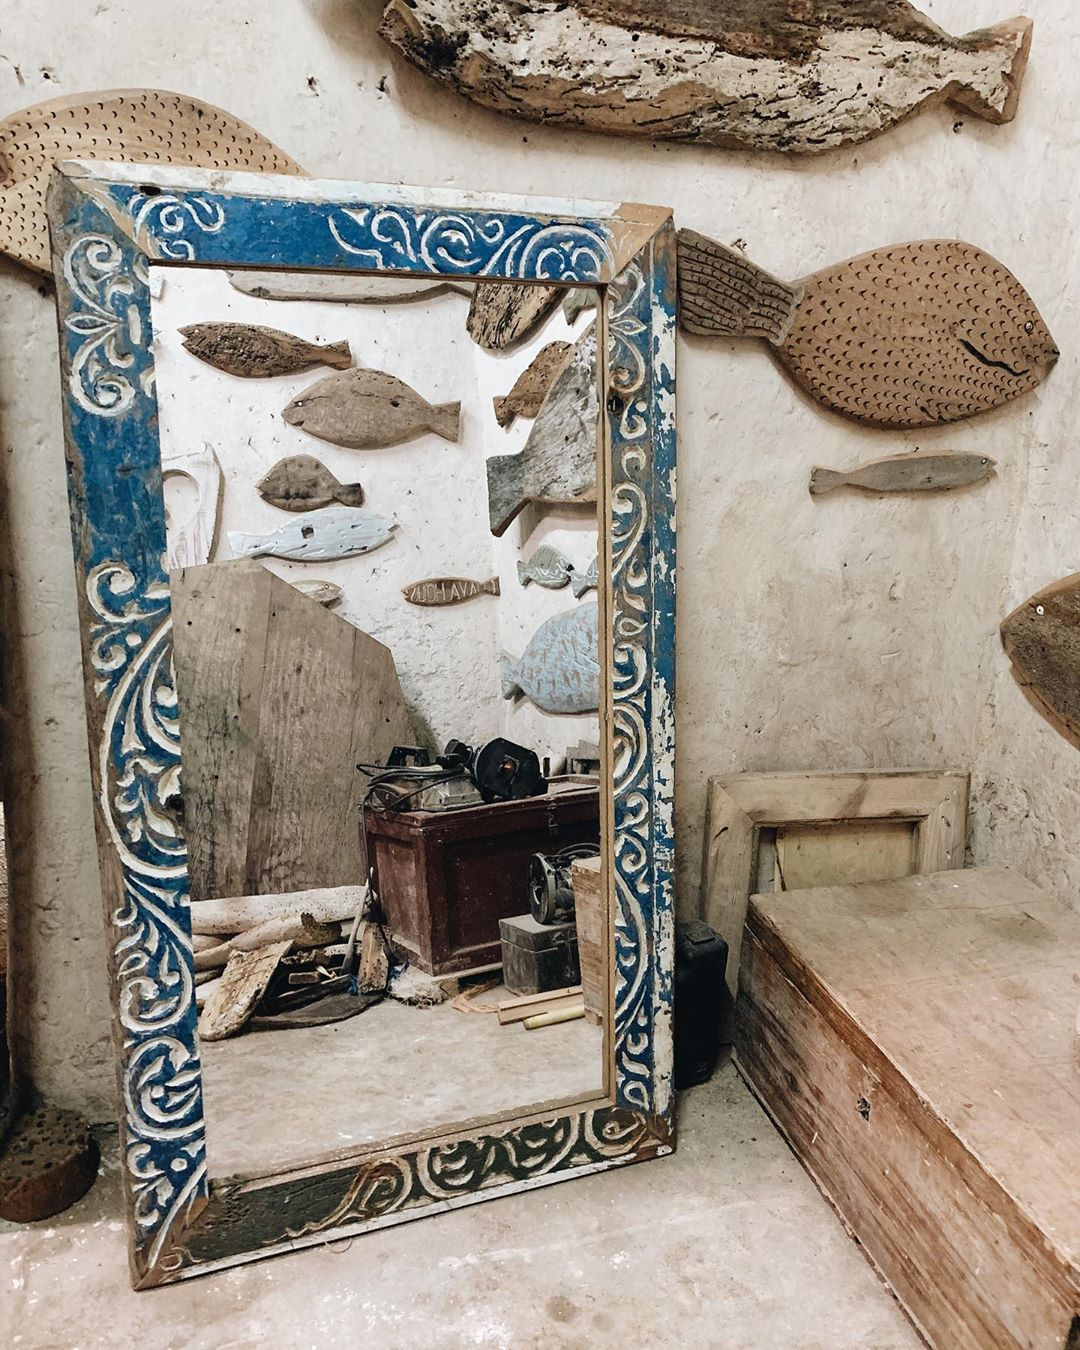 F4 Recycle dhow mirror: 1.7m x 0.75m $200 (20,000ksh)